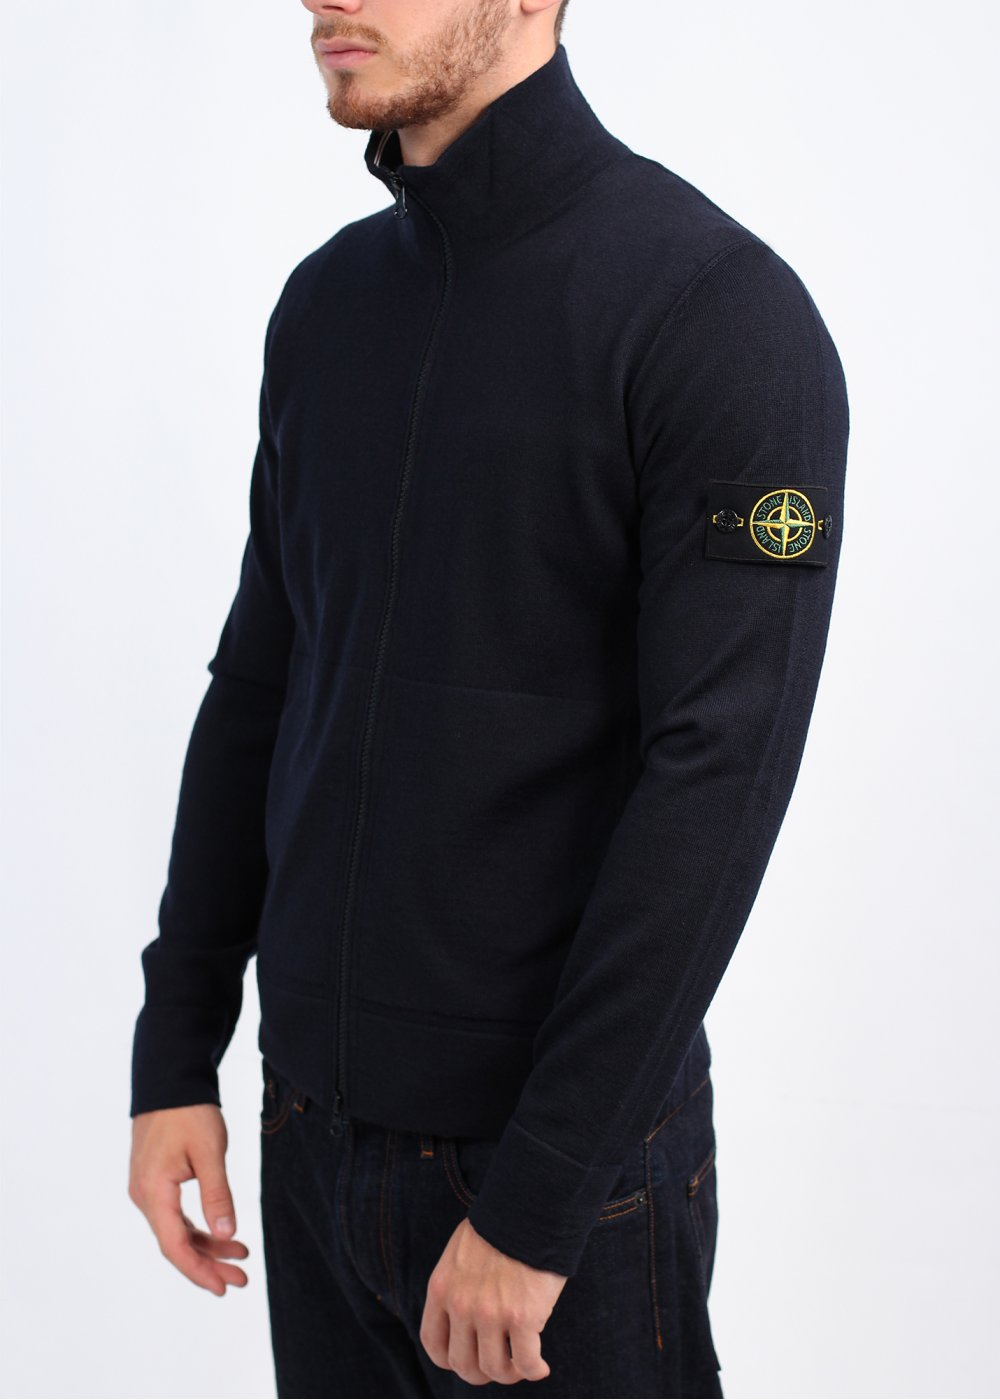 stone island zip knitwear navy. Black Bedroom Furniture Sets. Home Design Ideas